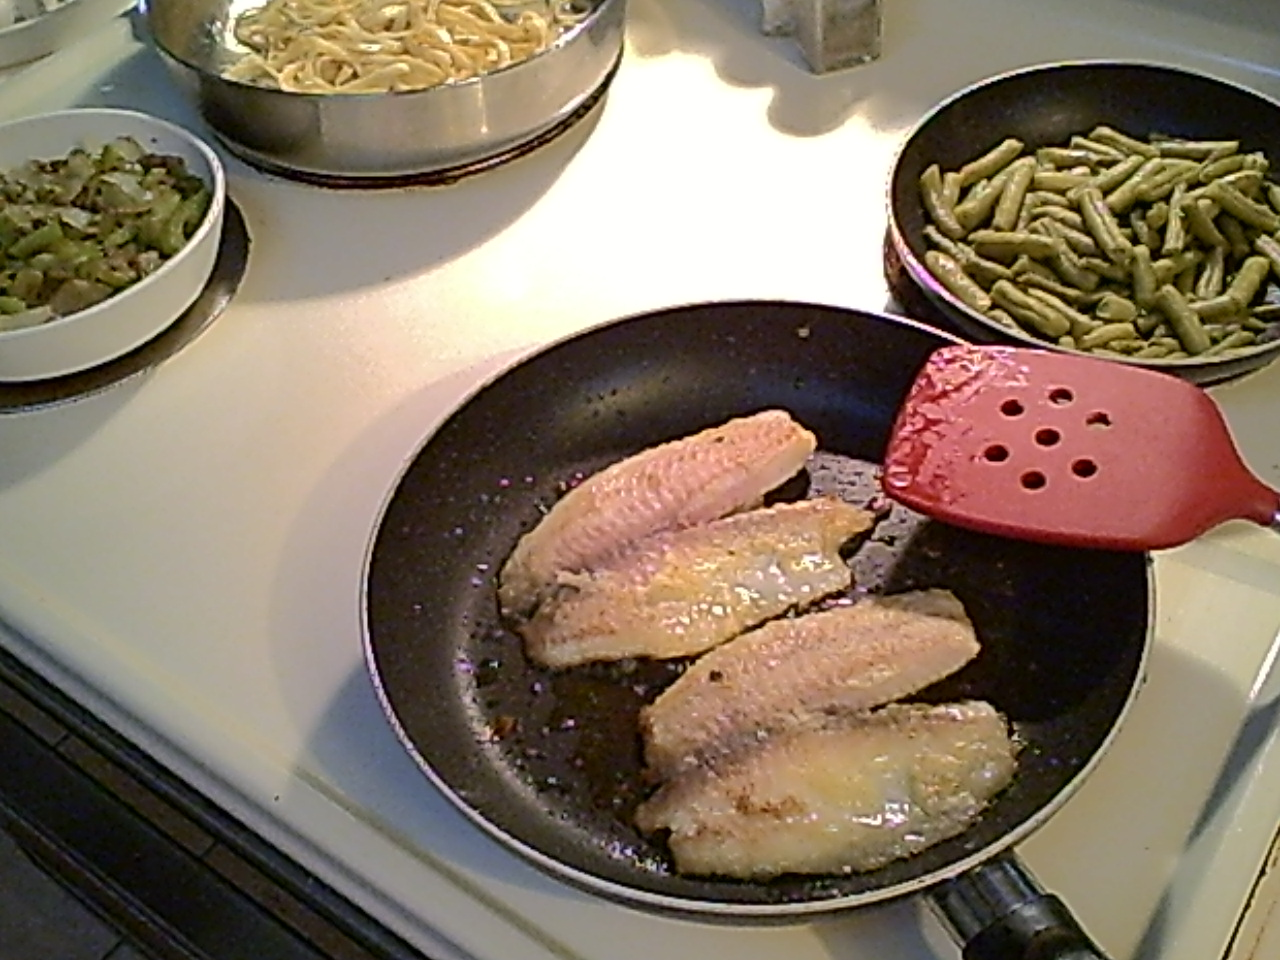 Gluten-Free Pan-Grilled Tilapia with Several Sides